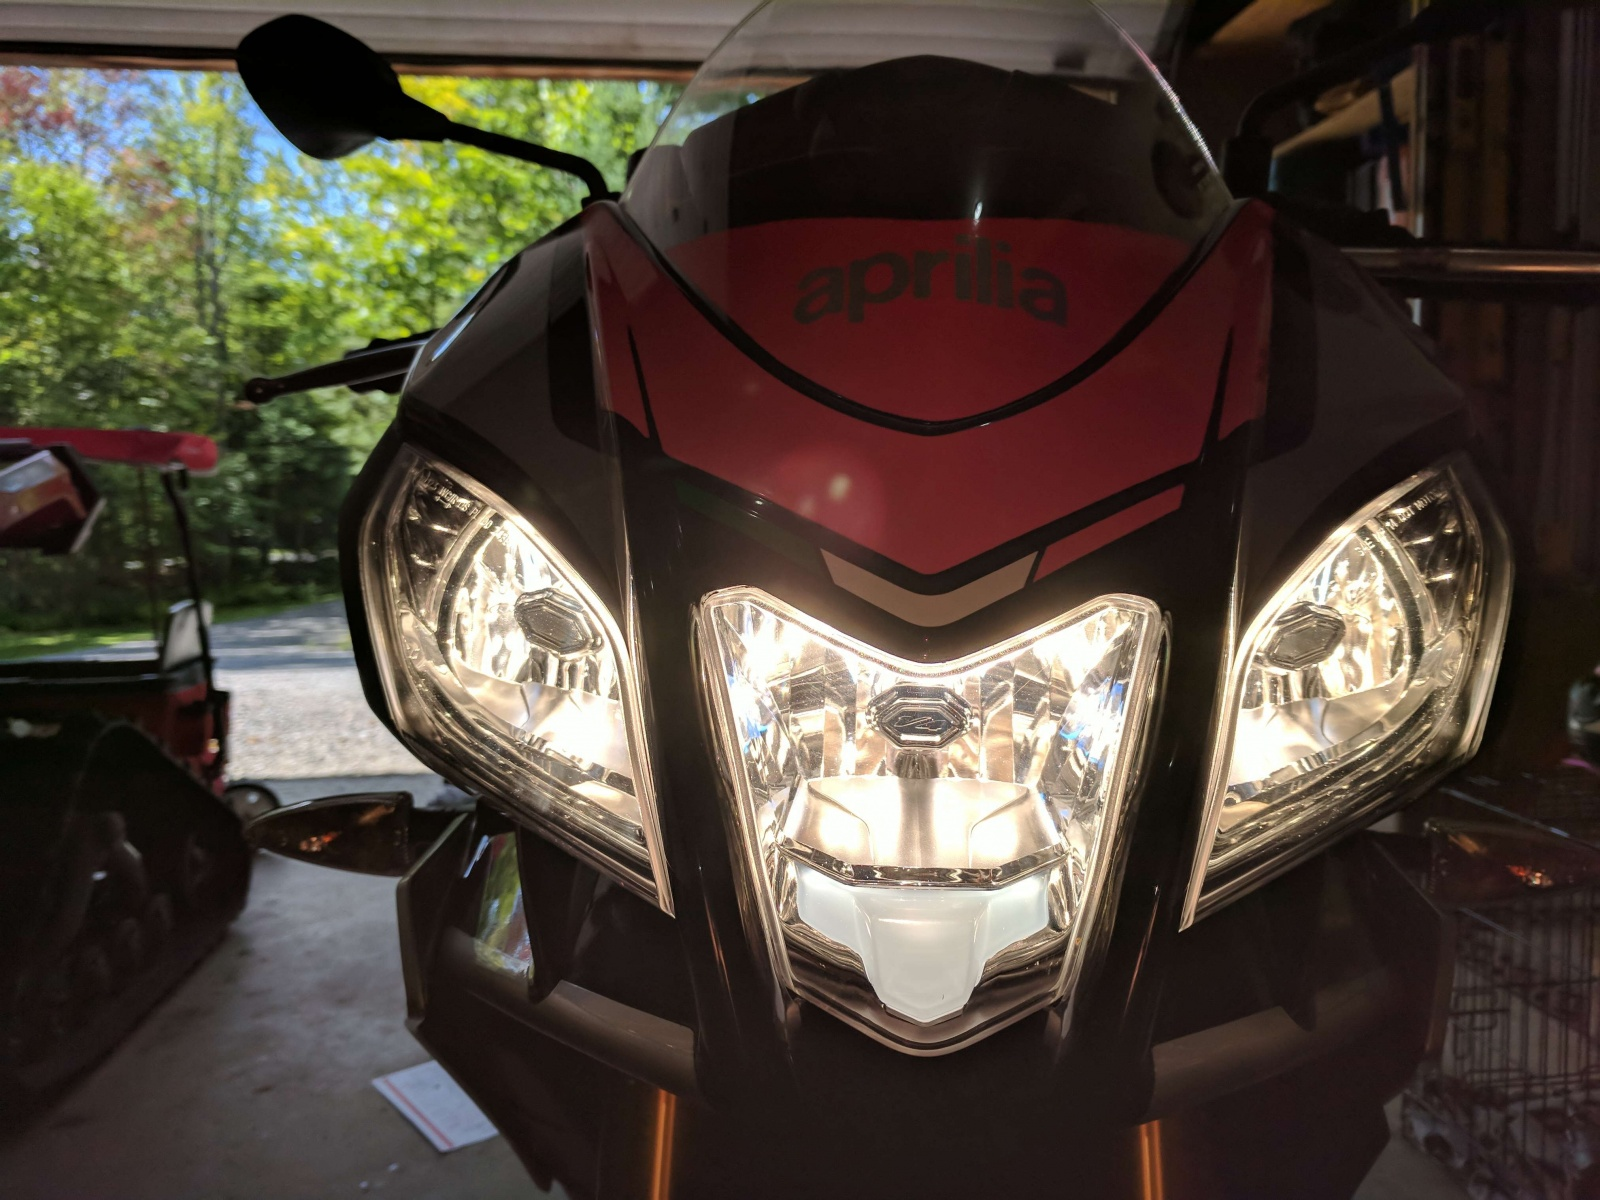 Tuono 1100 Led Headlight Mod